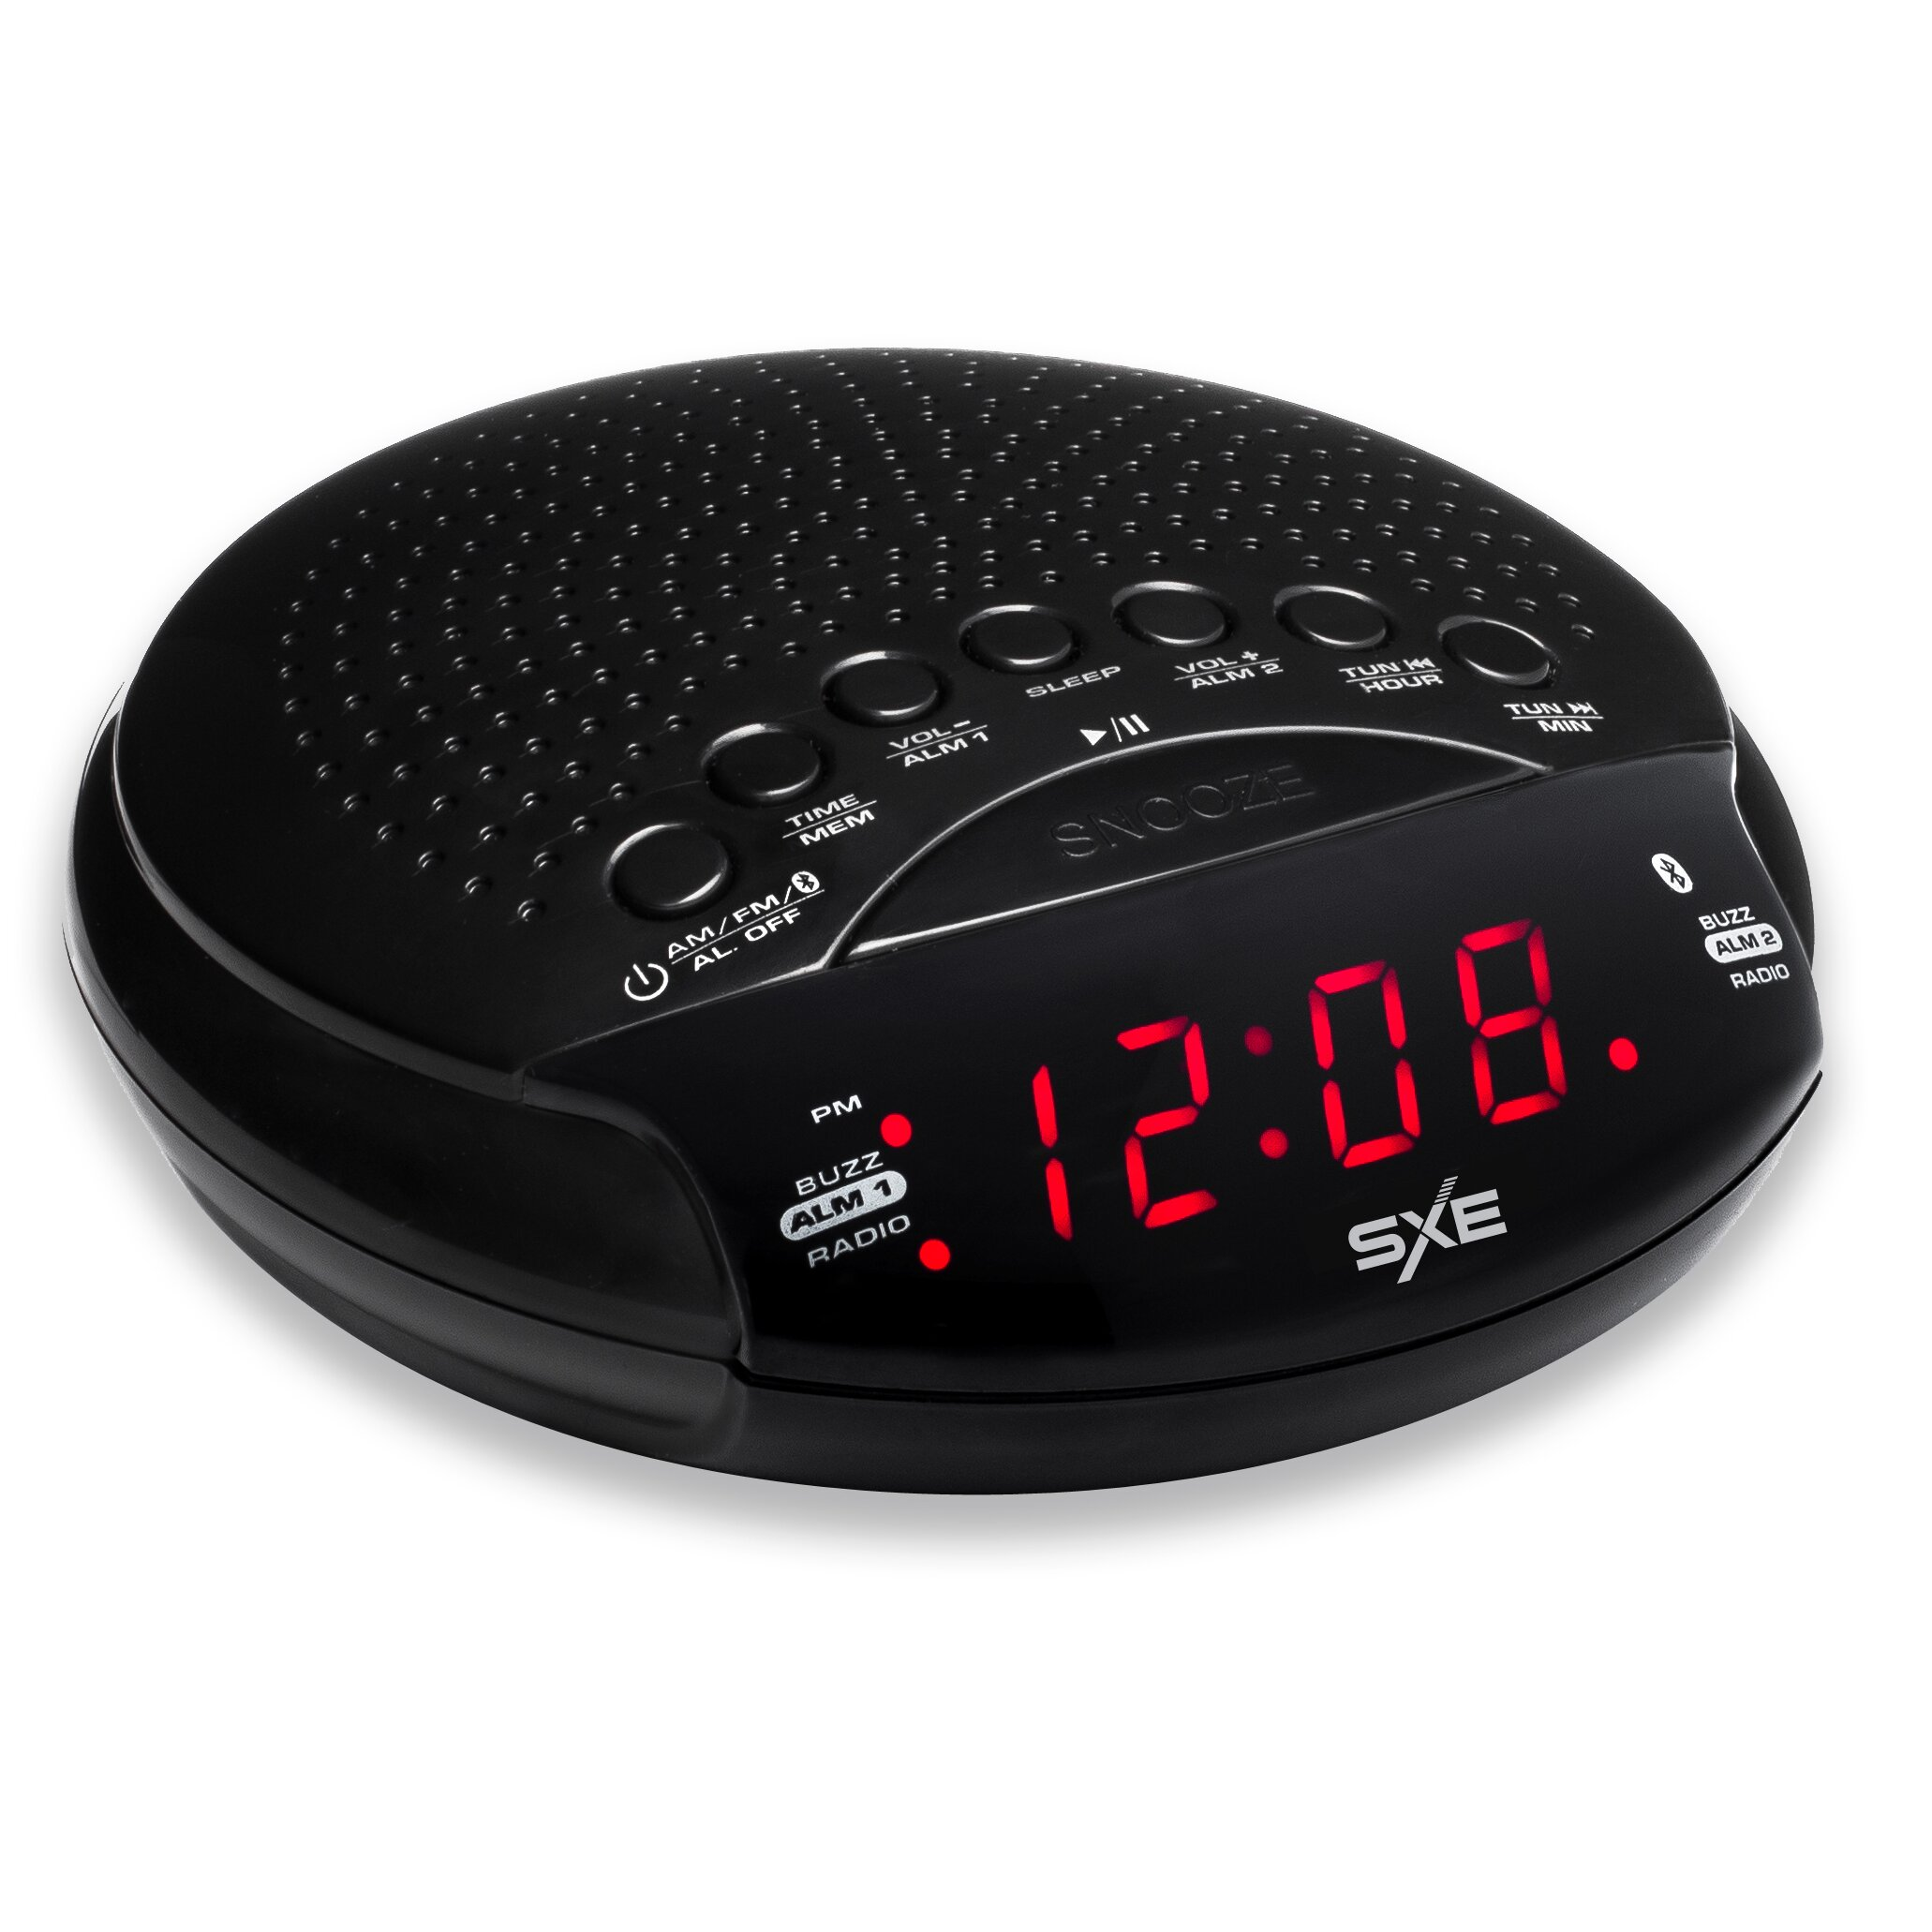 westclox sxe bluetooth speaker and radio alarm clock reviews wayfair. Black Bedroom Furniture Sets. Home Design Ideas